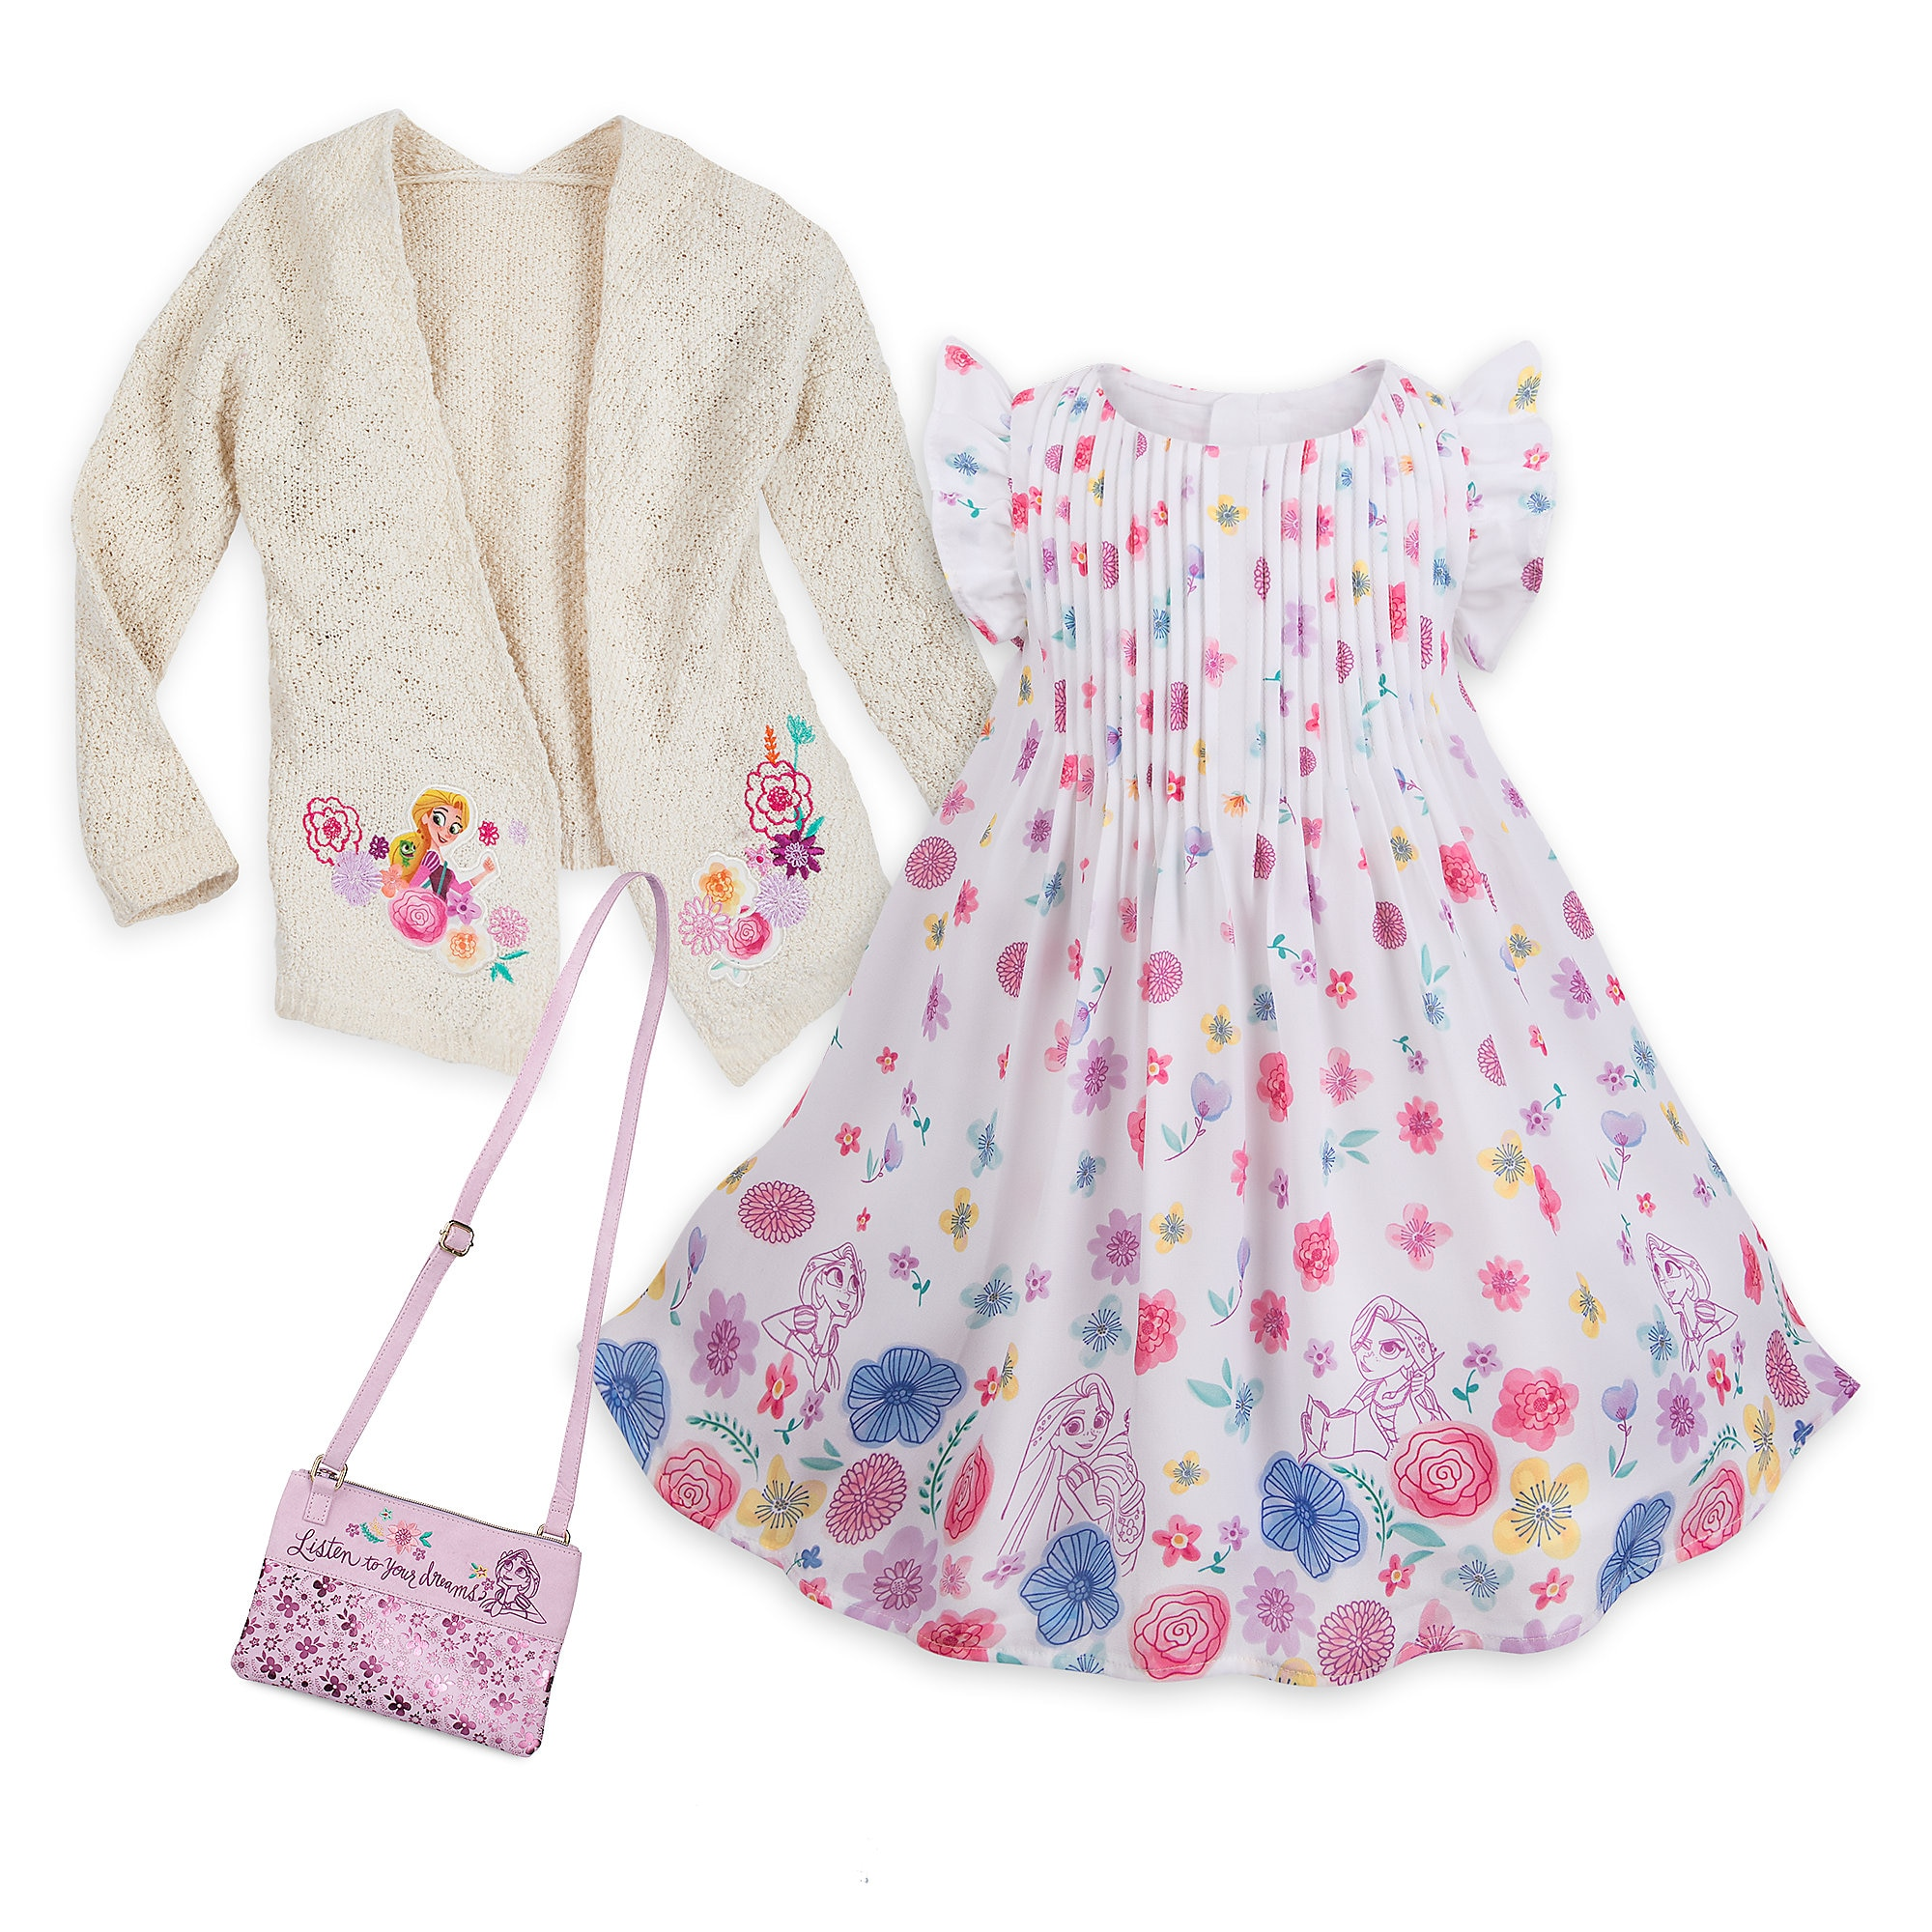 Rapunzel Fashion Collection for Girls